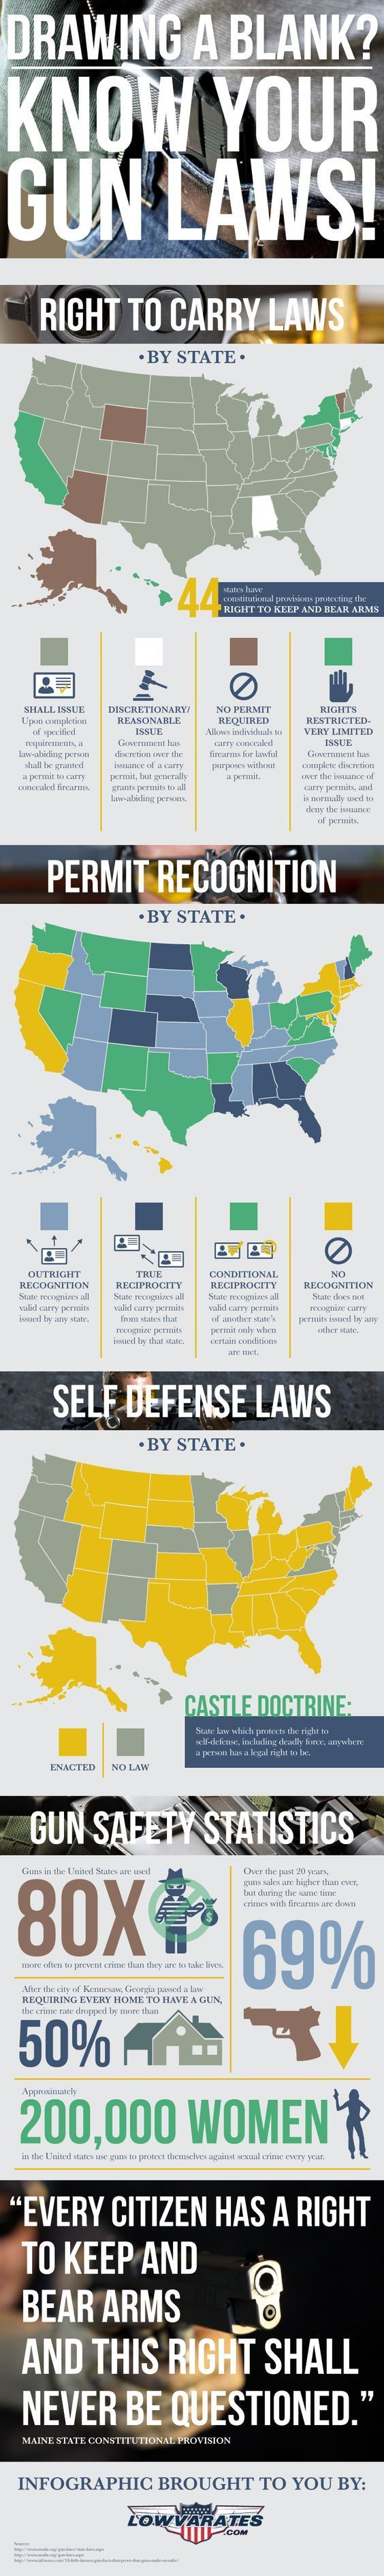 Make sure while carrying your ccw handgun, you also keep up with concealed carry laws. Stay safe and concealed carry everday!